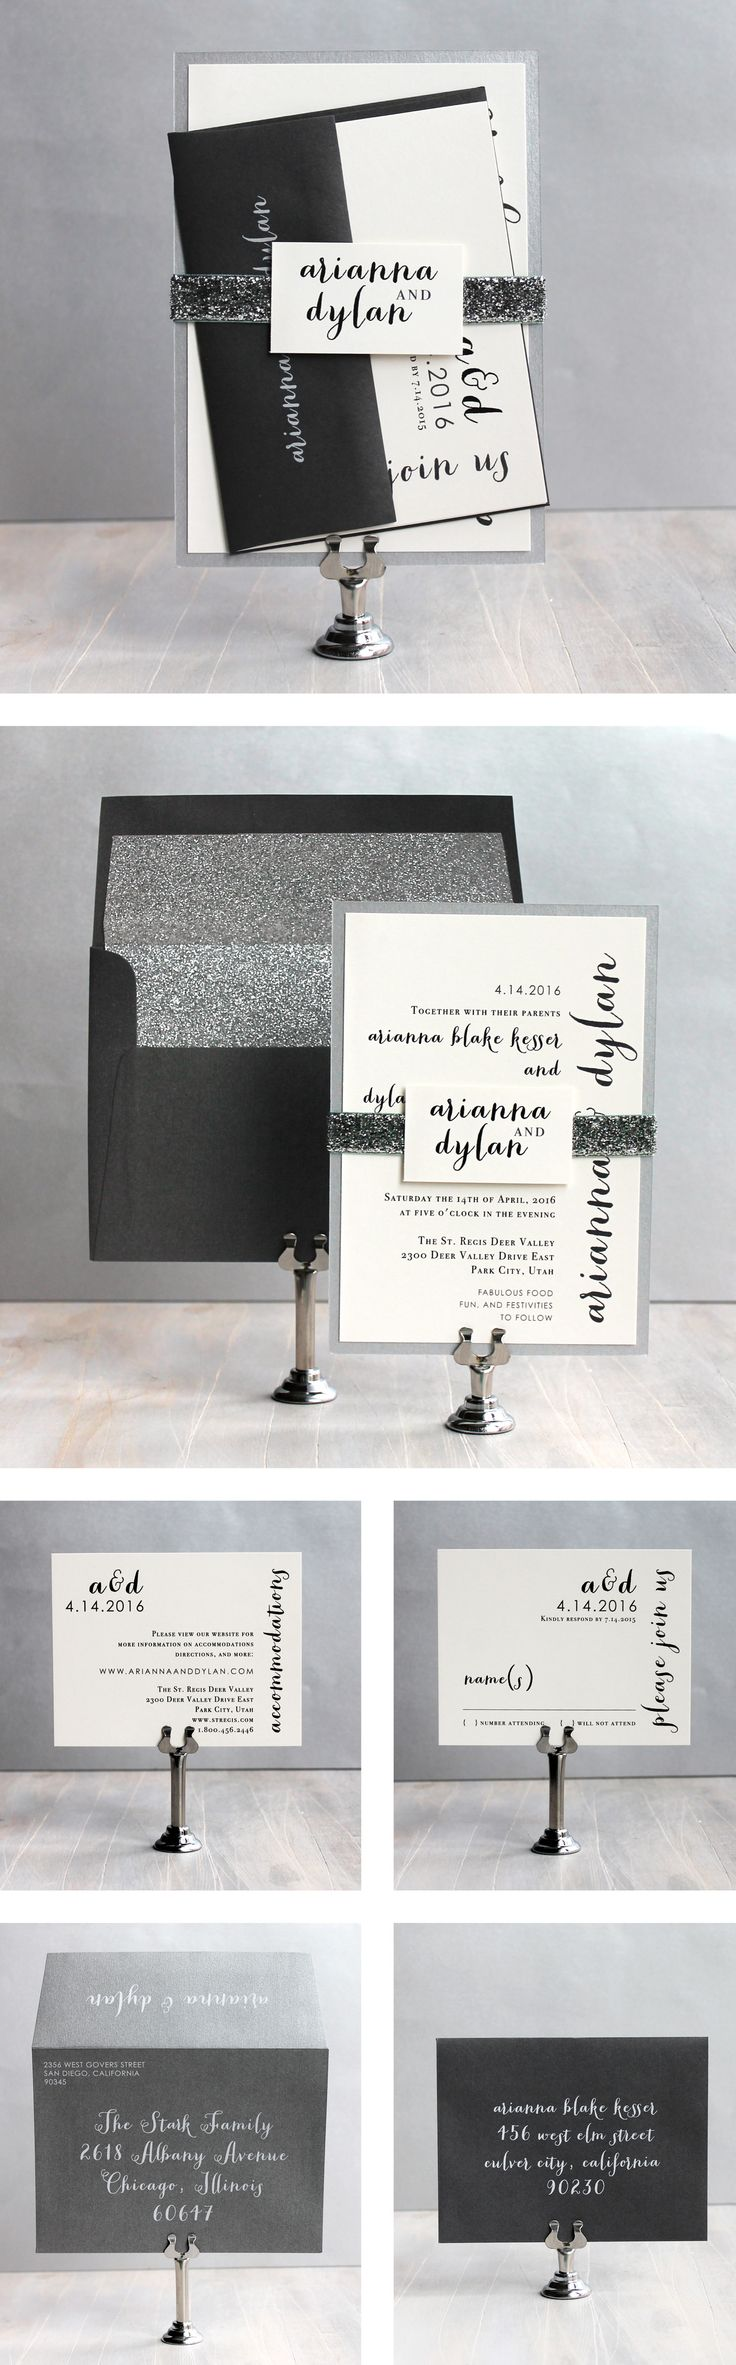 Silver & Glitter Wedding Invitations {NEW} #beaconlane Purchase a sample here: https://www.etsy.com/listing/170674488/silver-glitter-glitter-wedding?ref=shop_home_active&ga_search_query=glitter